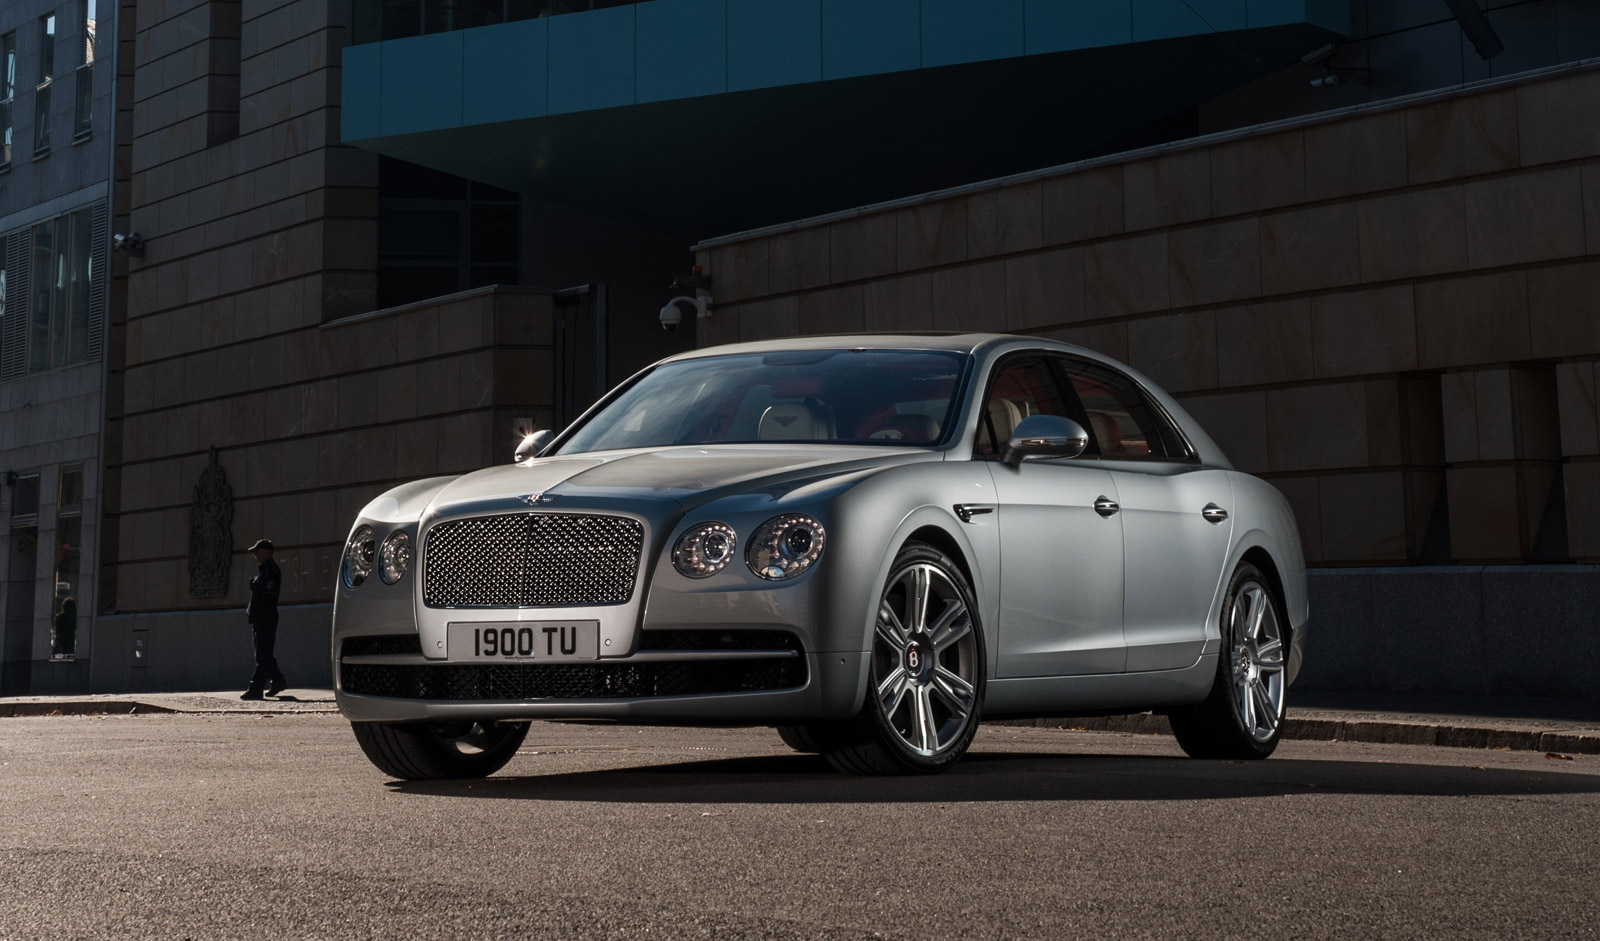 BMW Of Fresno >> 2015 Bentley Flying Spur Review, Ratings, Specs, Prices, and Photos - The Car Connection